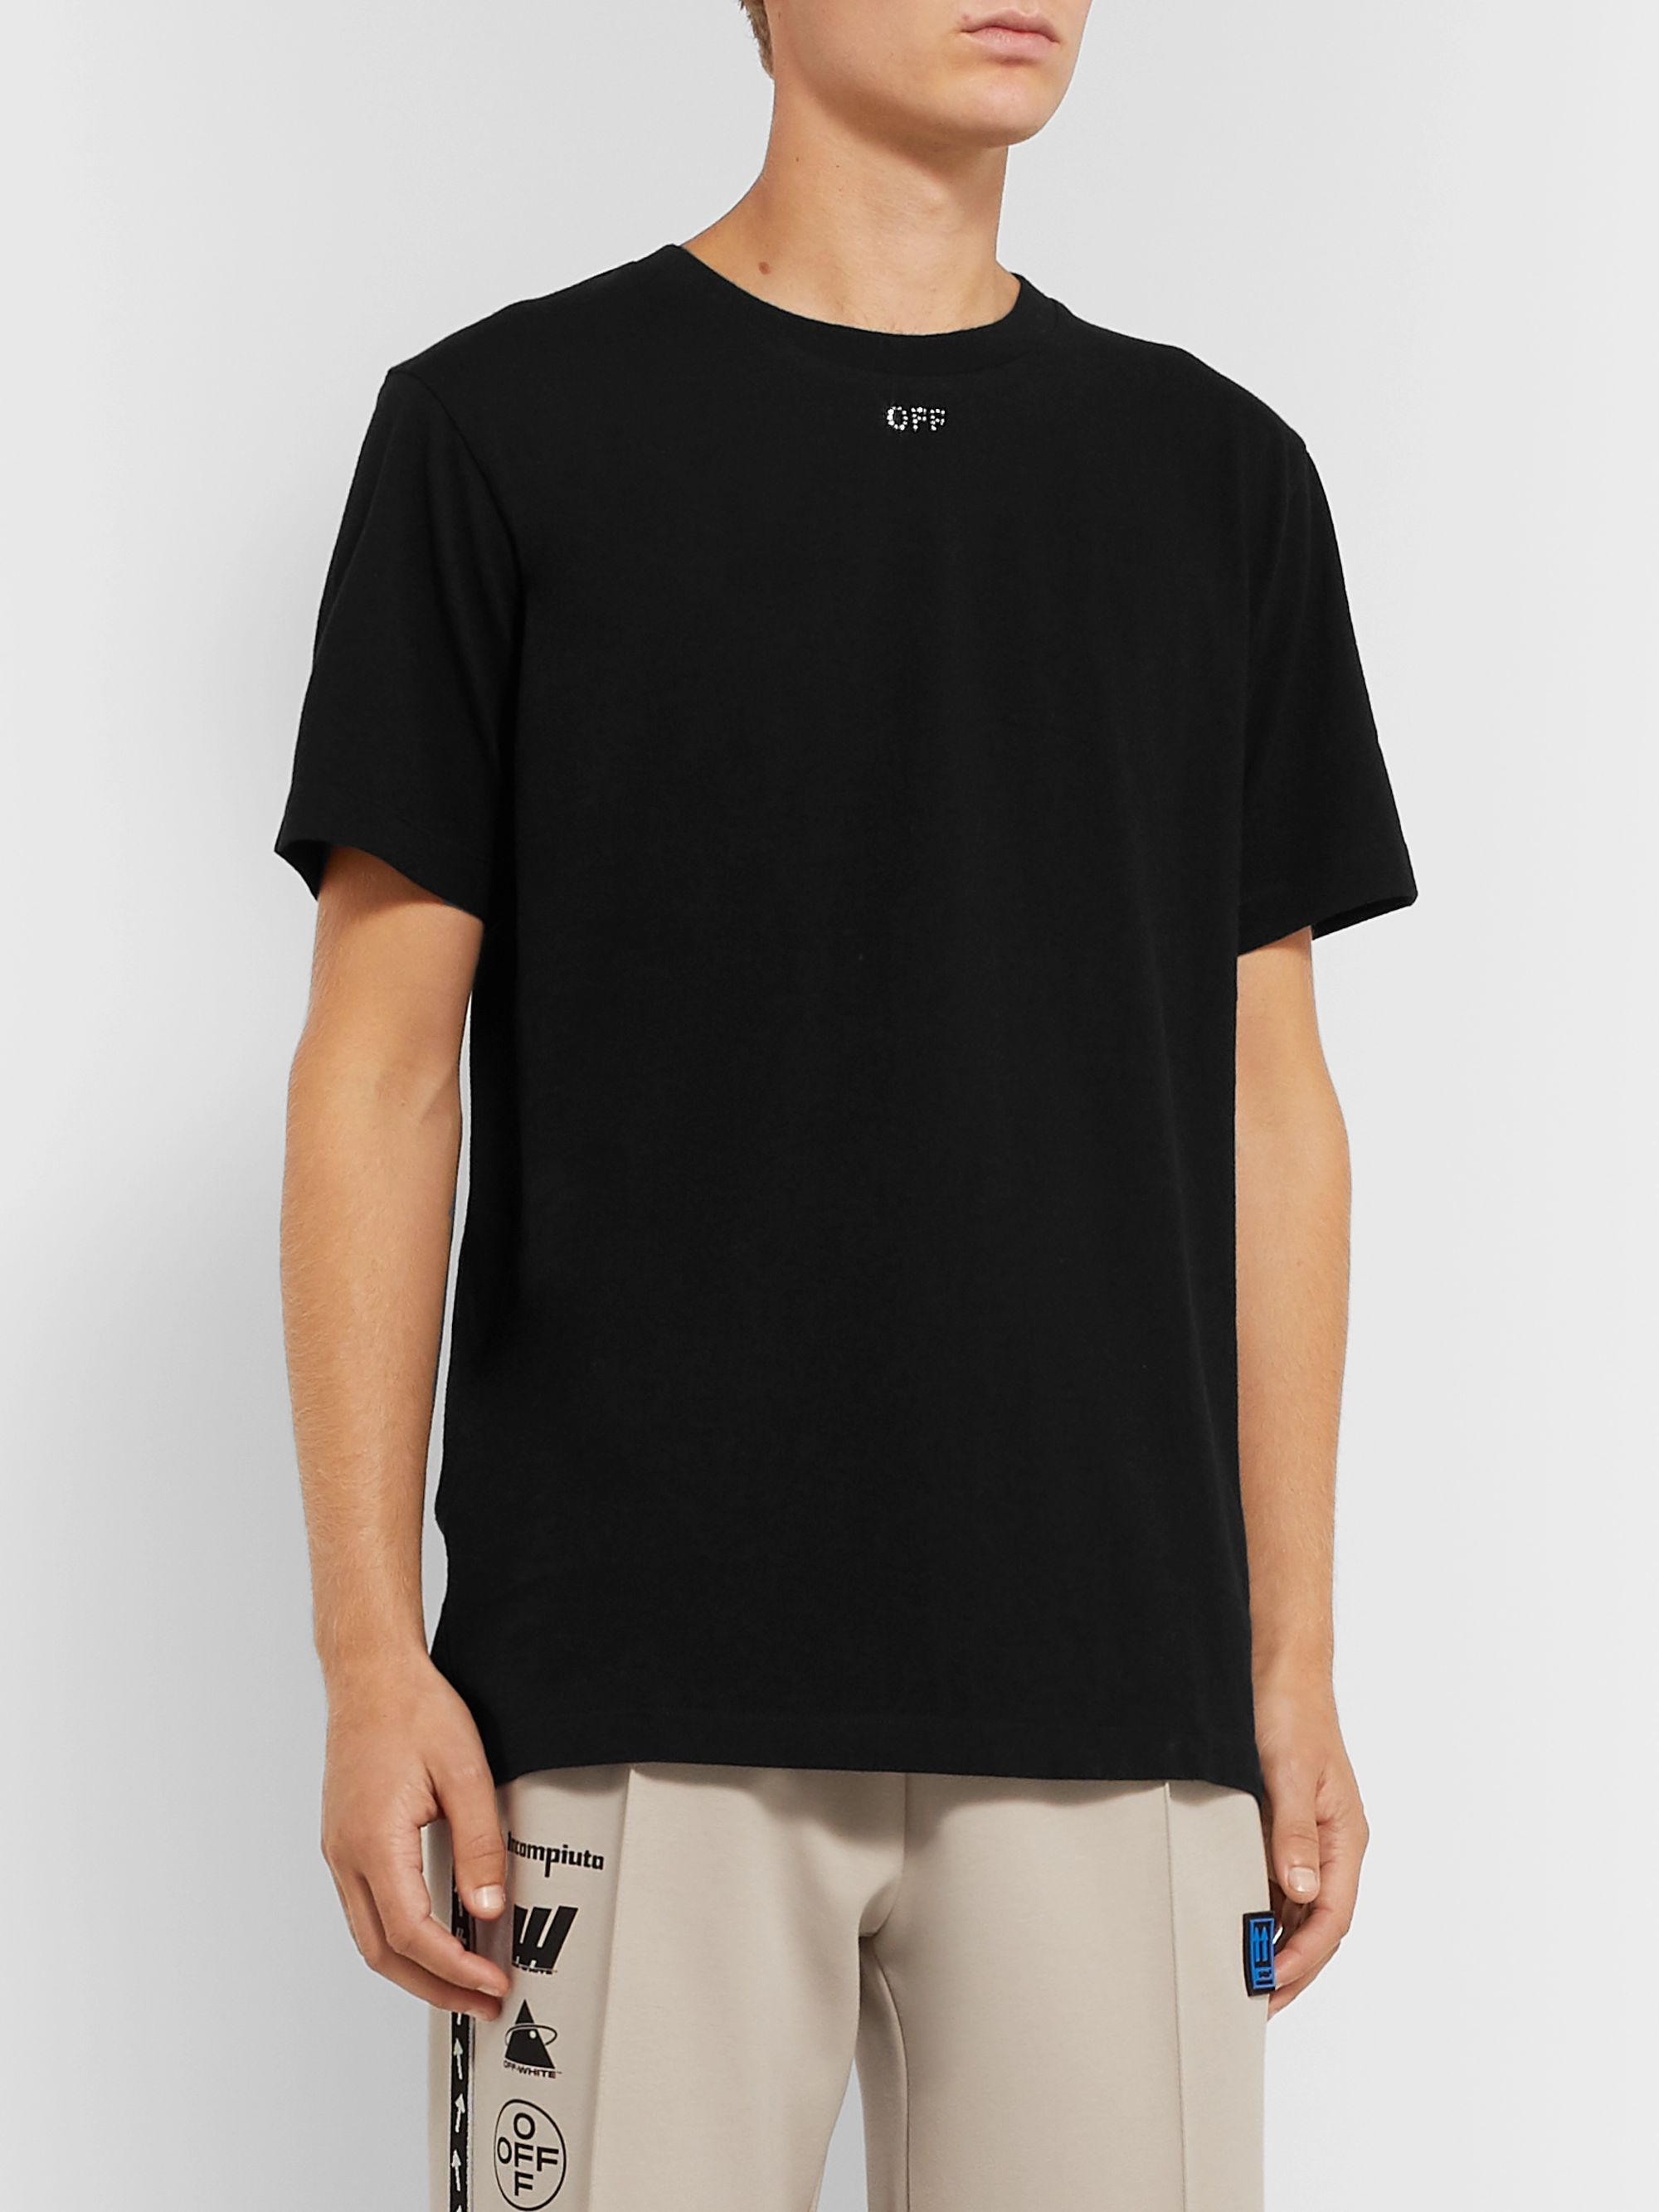 Off-White Logo-Embellished Cotton-Jersey T-Shirt